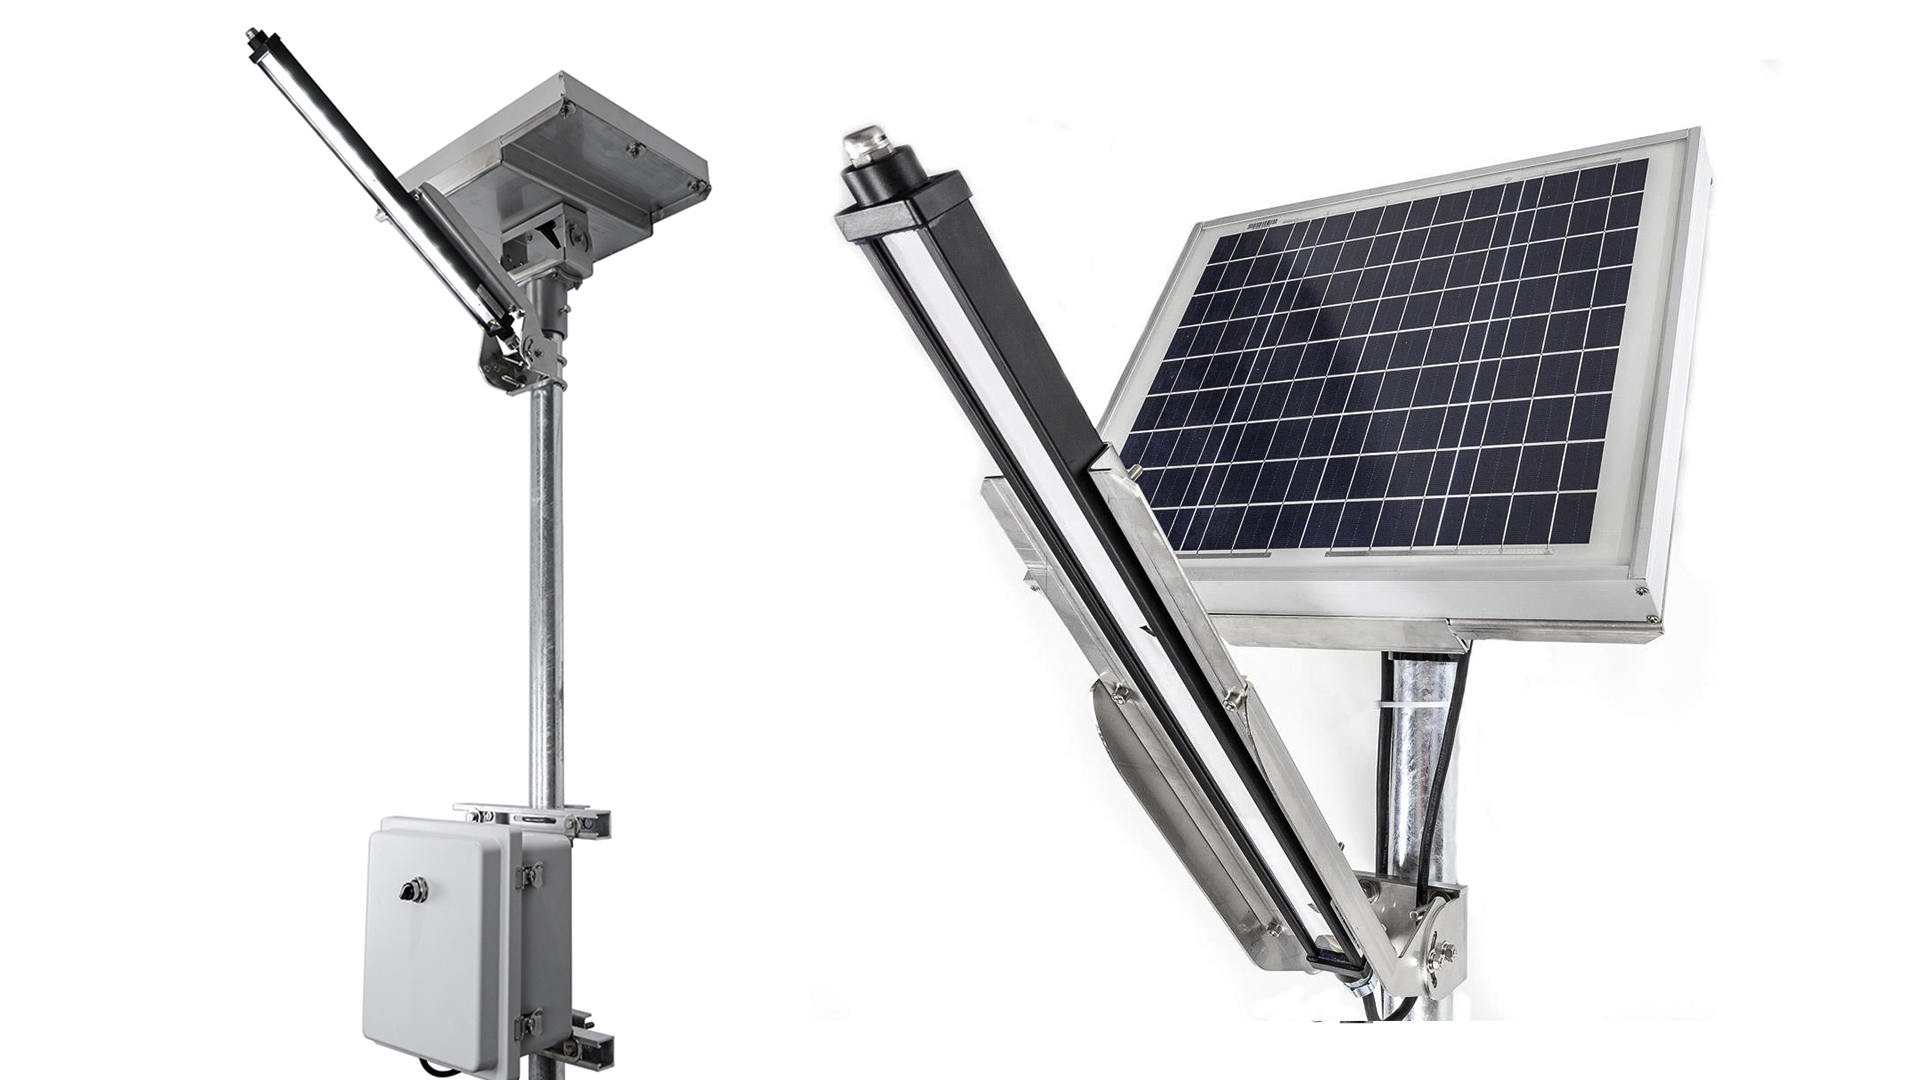 Nemalux Solar GS turnkey, ready-to-install remote solar powered lighting package, includes GS2-DC linear LED luminaire, pole, JB housing charge regulator and battery, all pre-wired